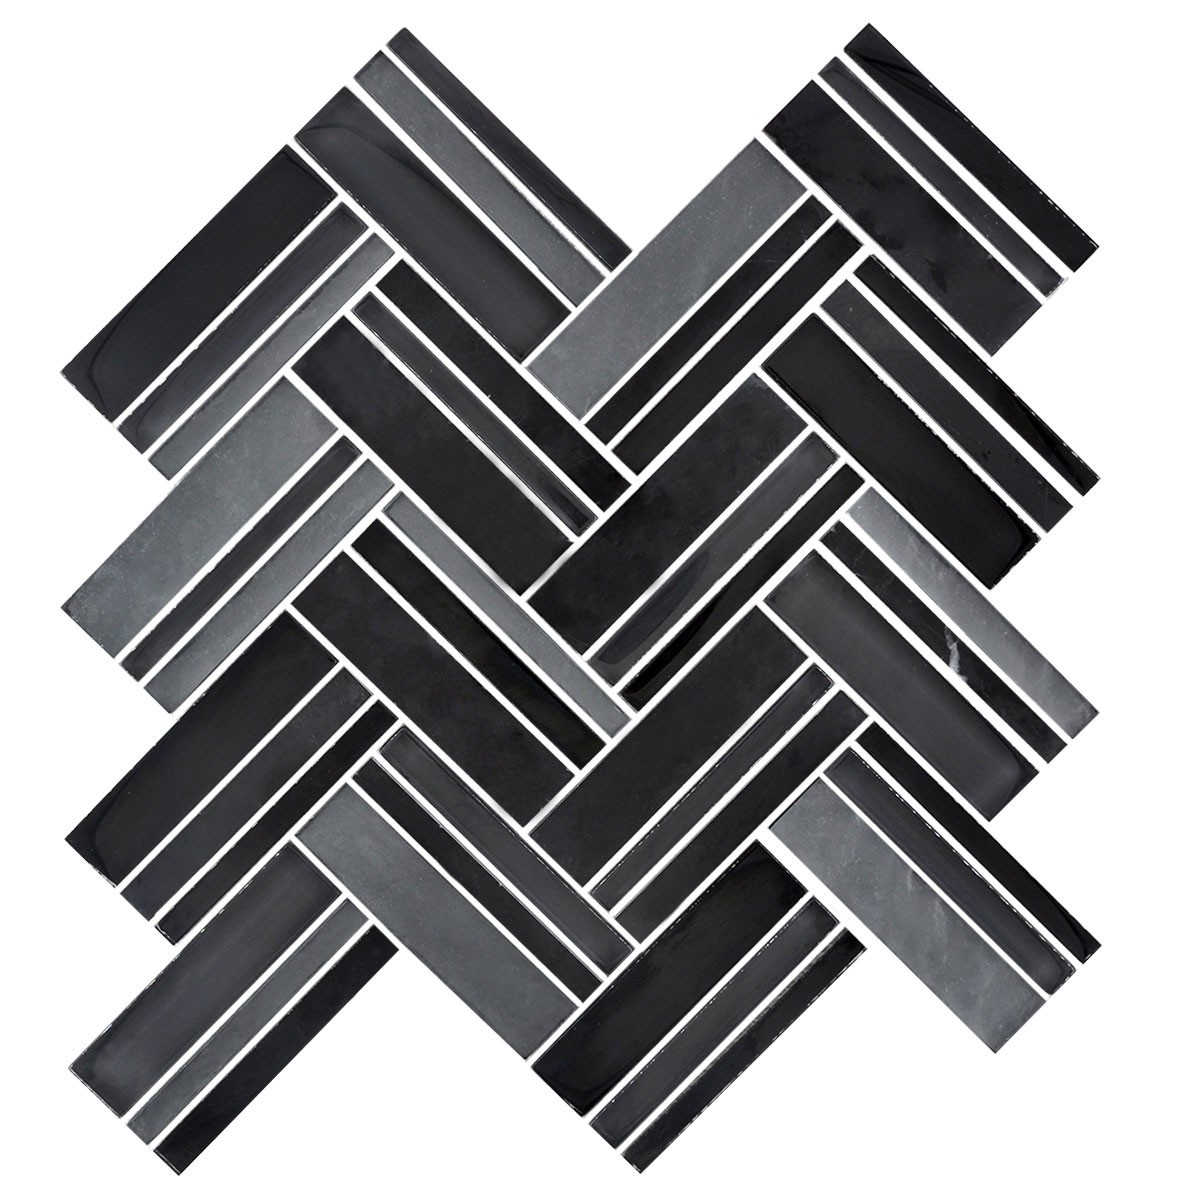 12.4 in. x 13.8 in. Glass and Stone Blend Strip Mosaic Tile - 8mm Thickness (DK-8NF0606-007)